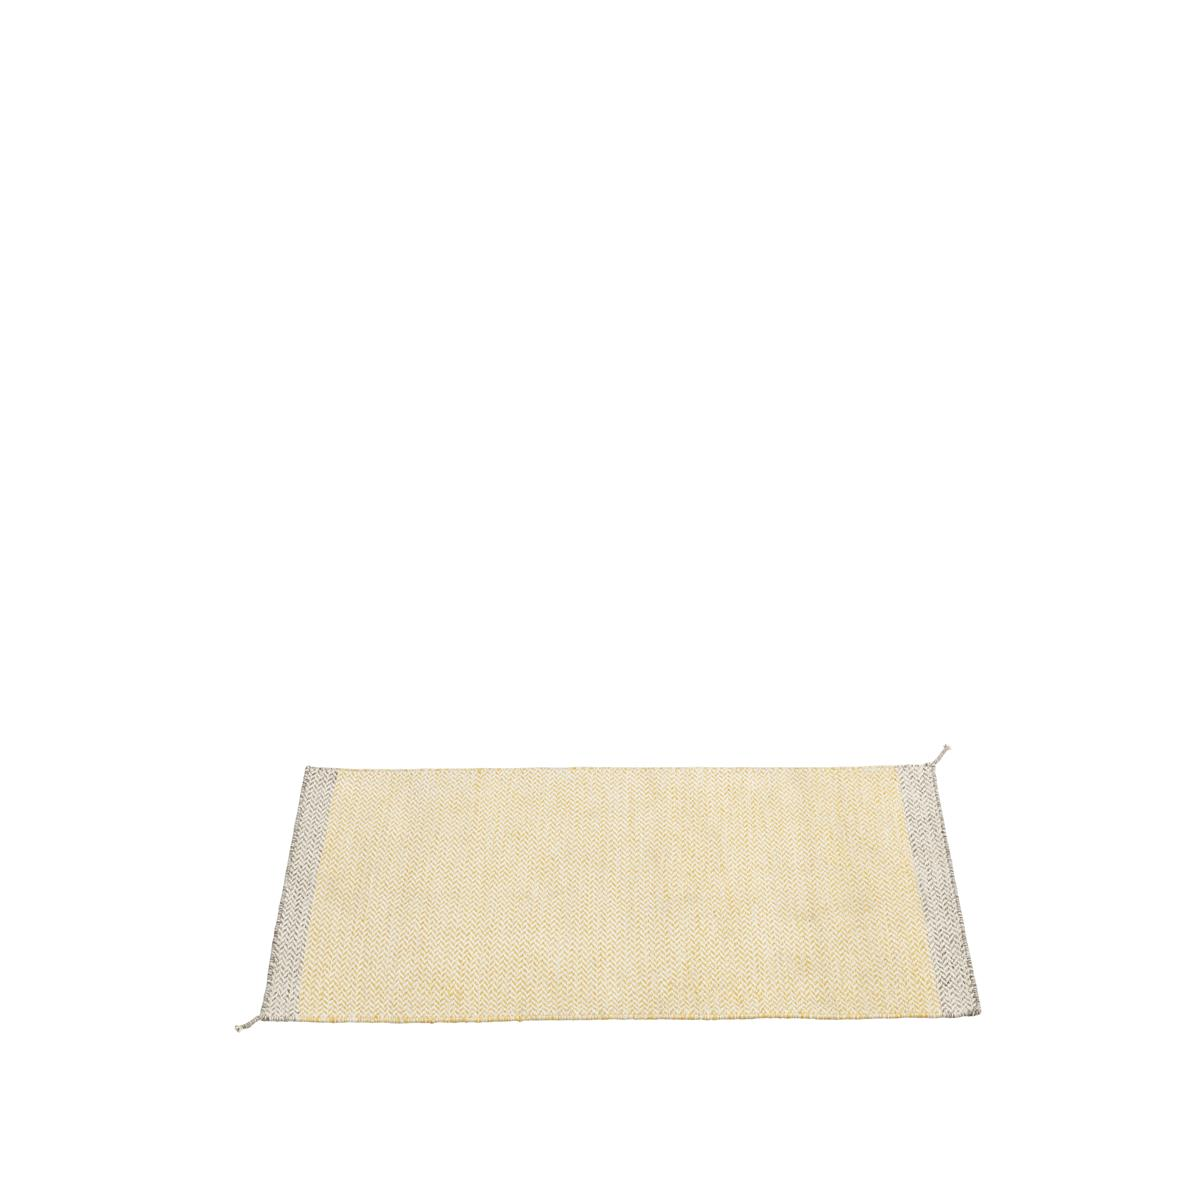 Ply Rug i 85 X 140 cm, Yellow